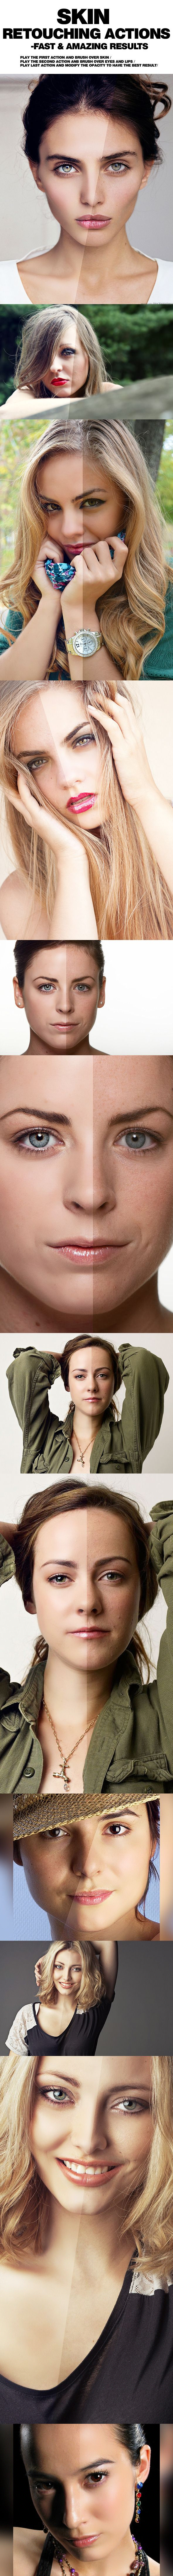 PRO Skin Retouching Photoshop Actions #photoeffect Download: http://graphicriver.net/item/pro-skin-retouching-actions/12613318?ref=ksioks